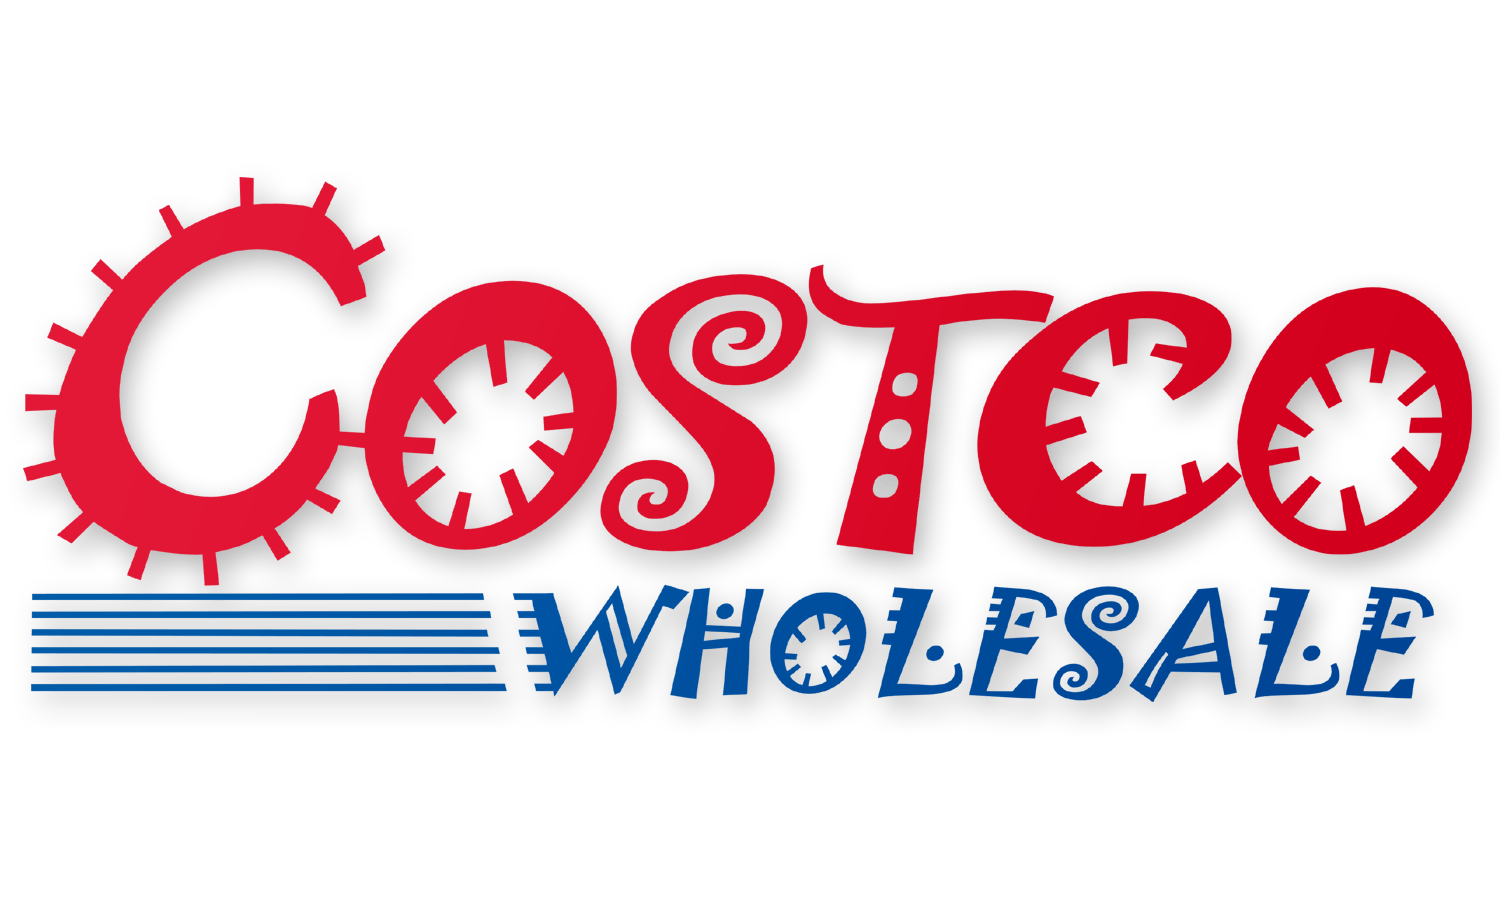 Costco Logo - Costco Logo | costco logo | costco wholesale | Logos, Famous logos ...